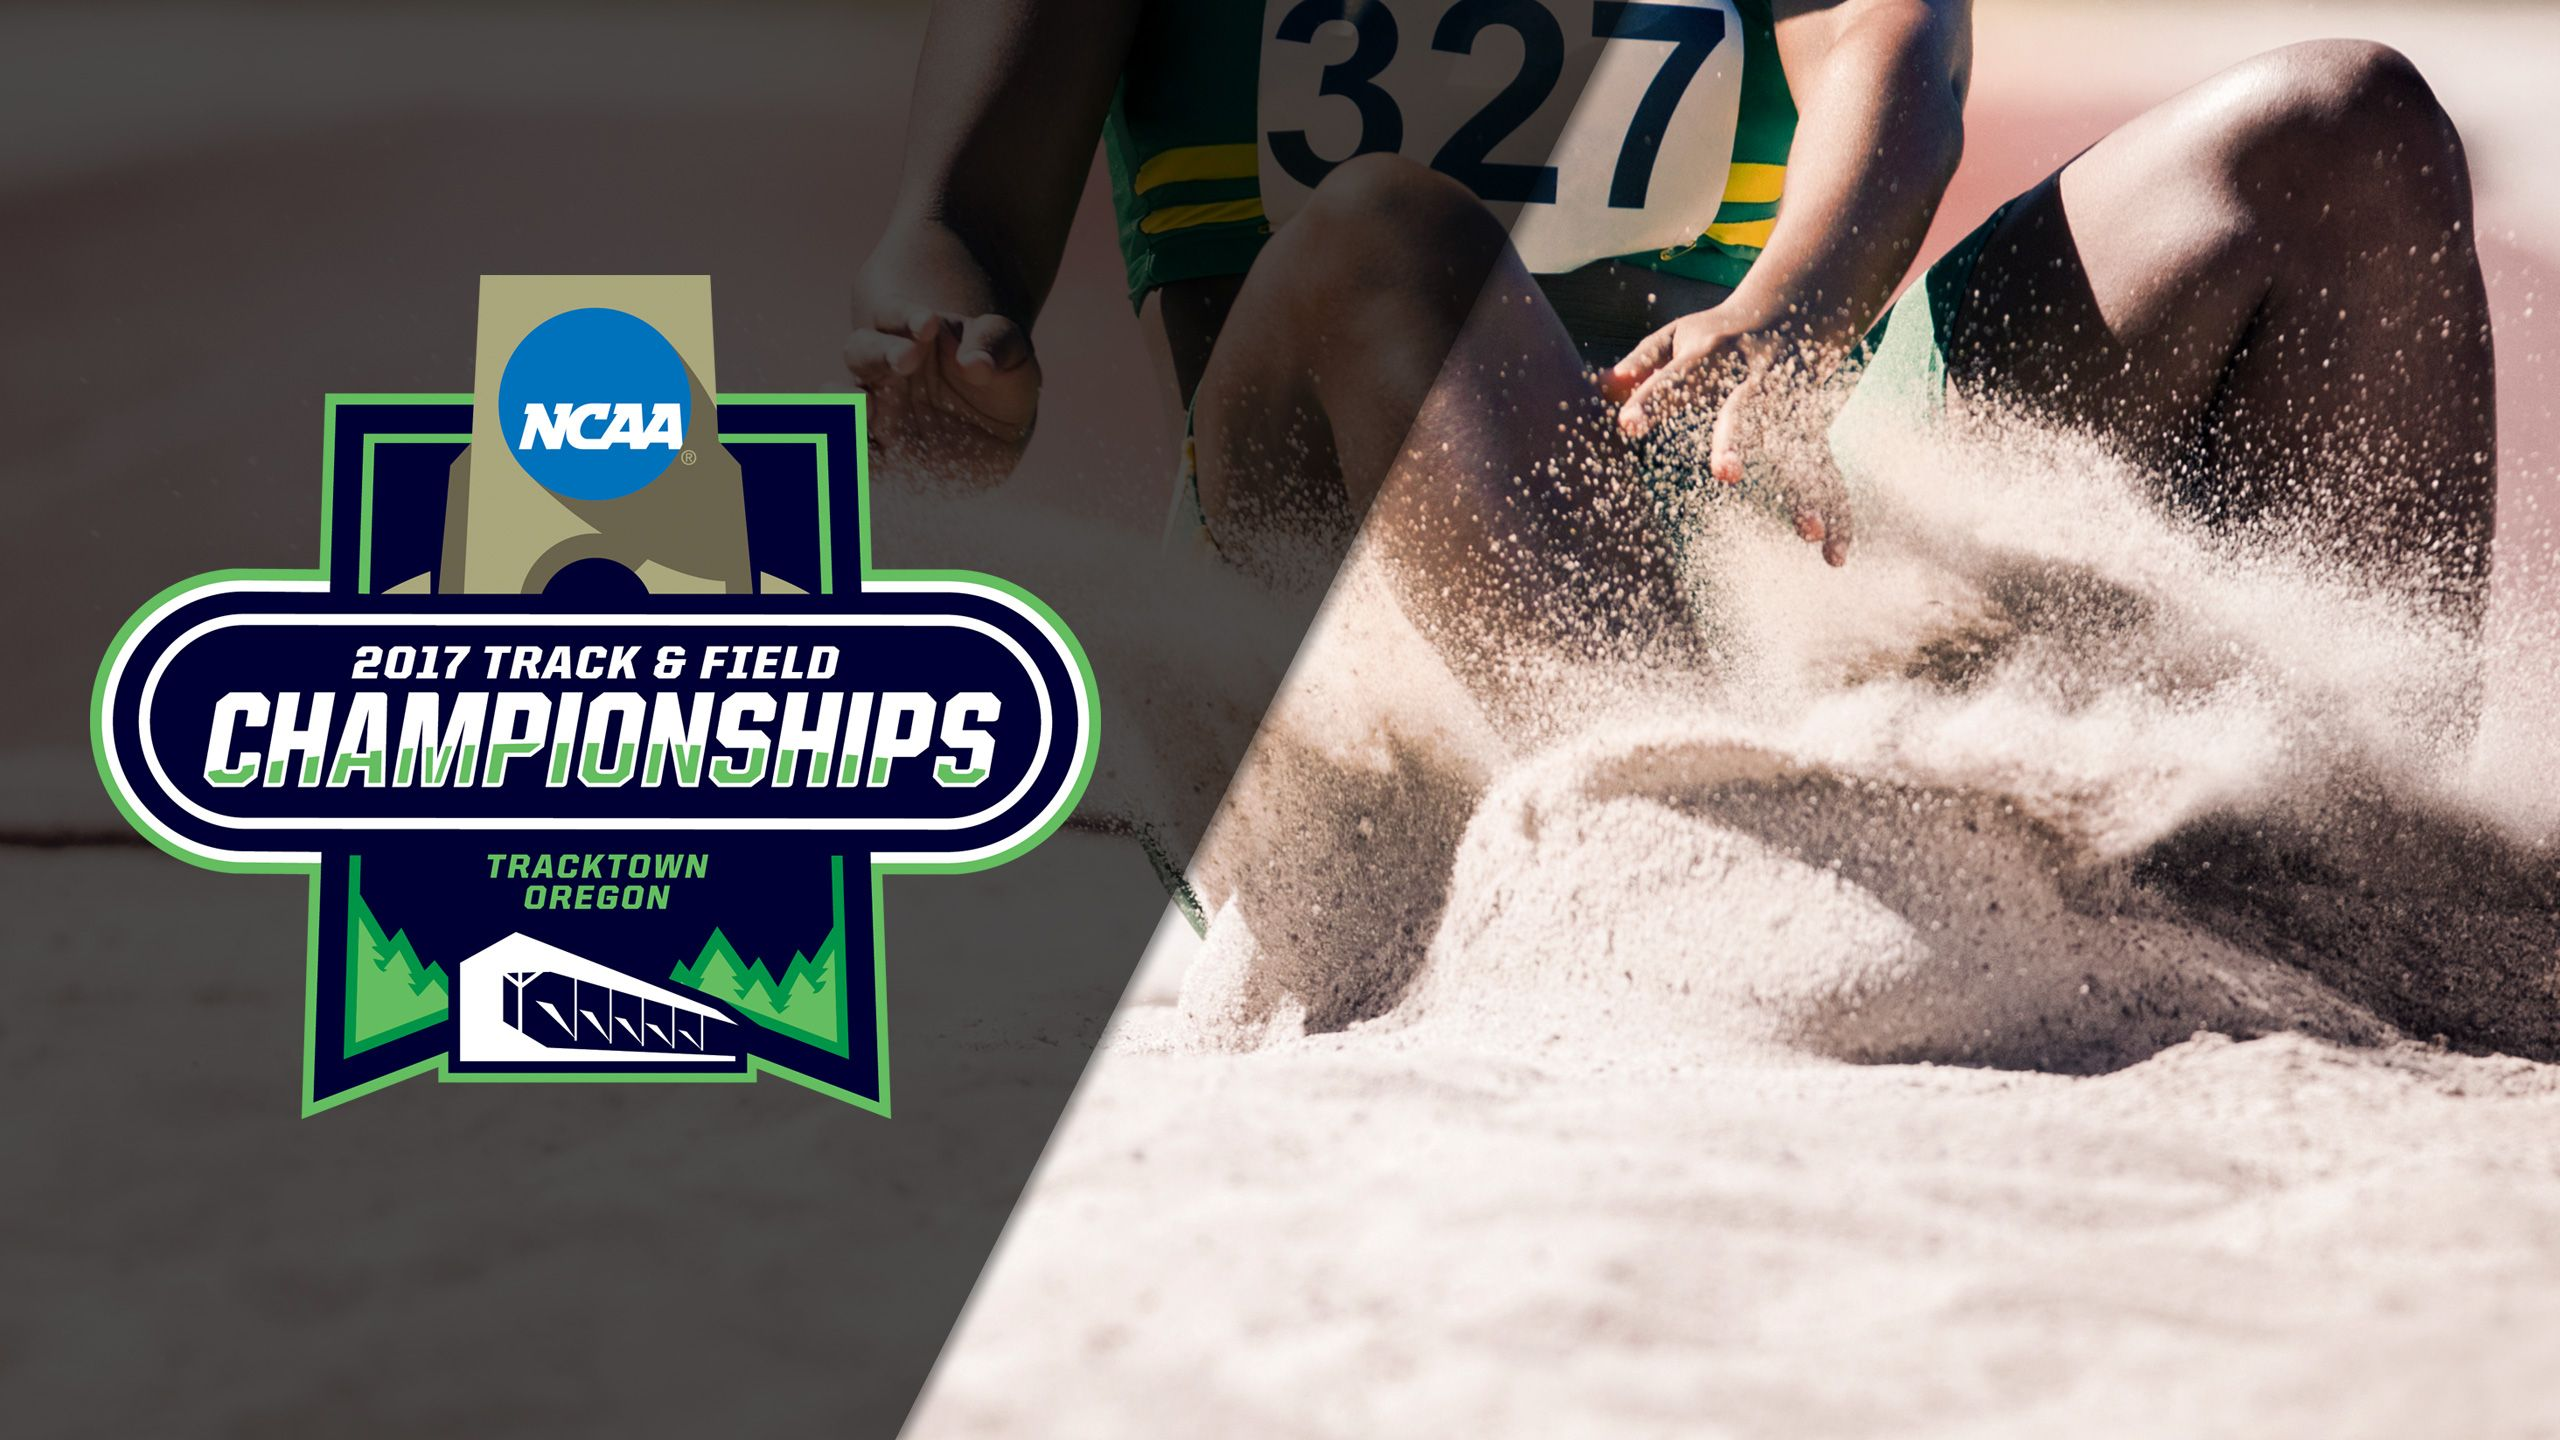 2017 NCAA Men's & Women's Track & Field Outdoor Championships Presented by Northwestern Mutual